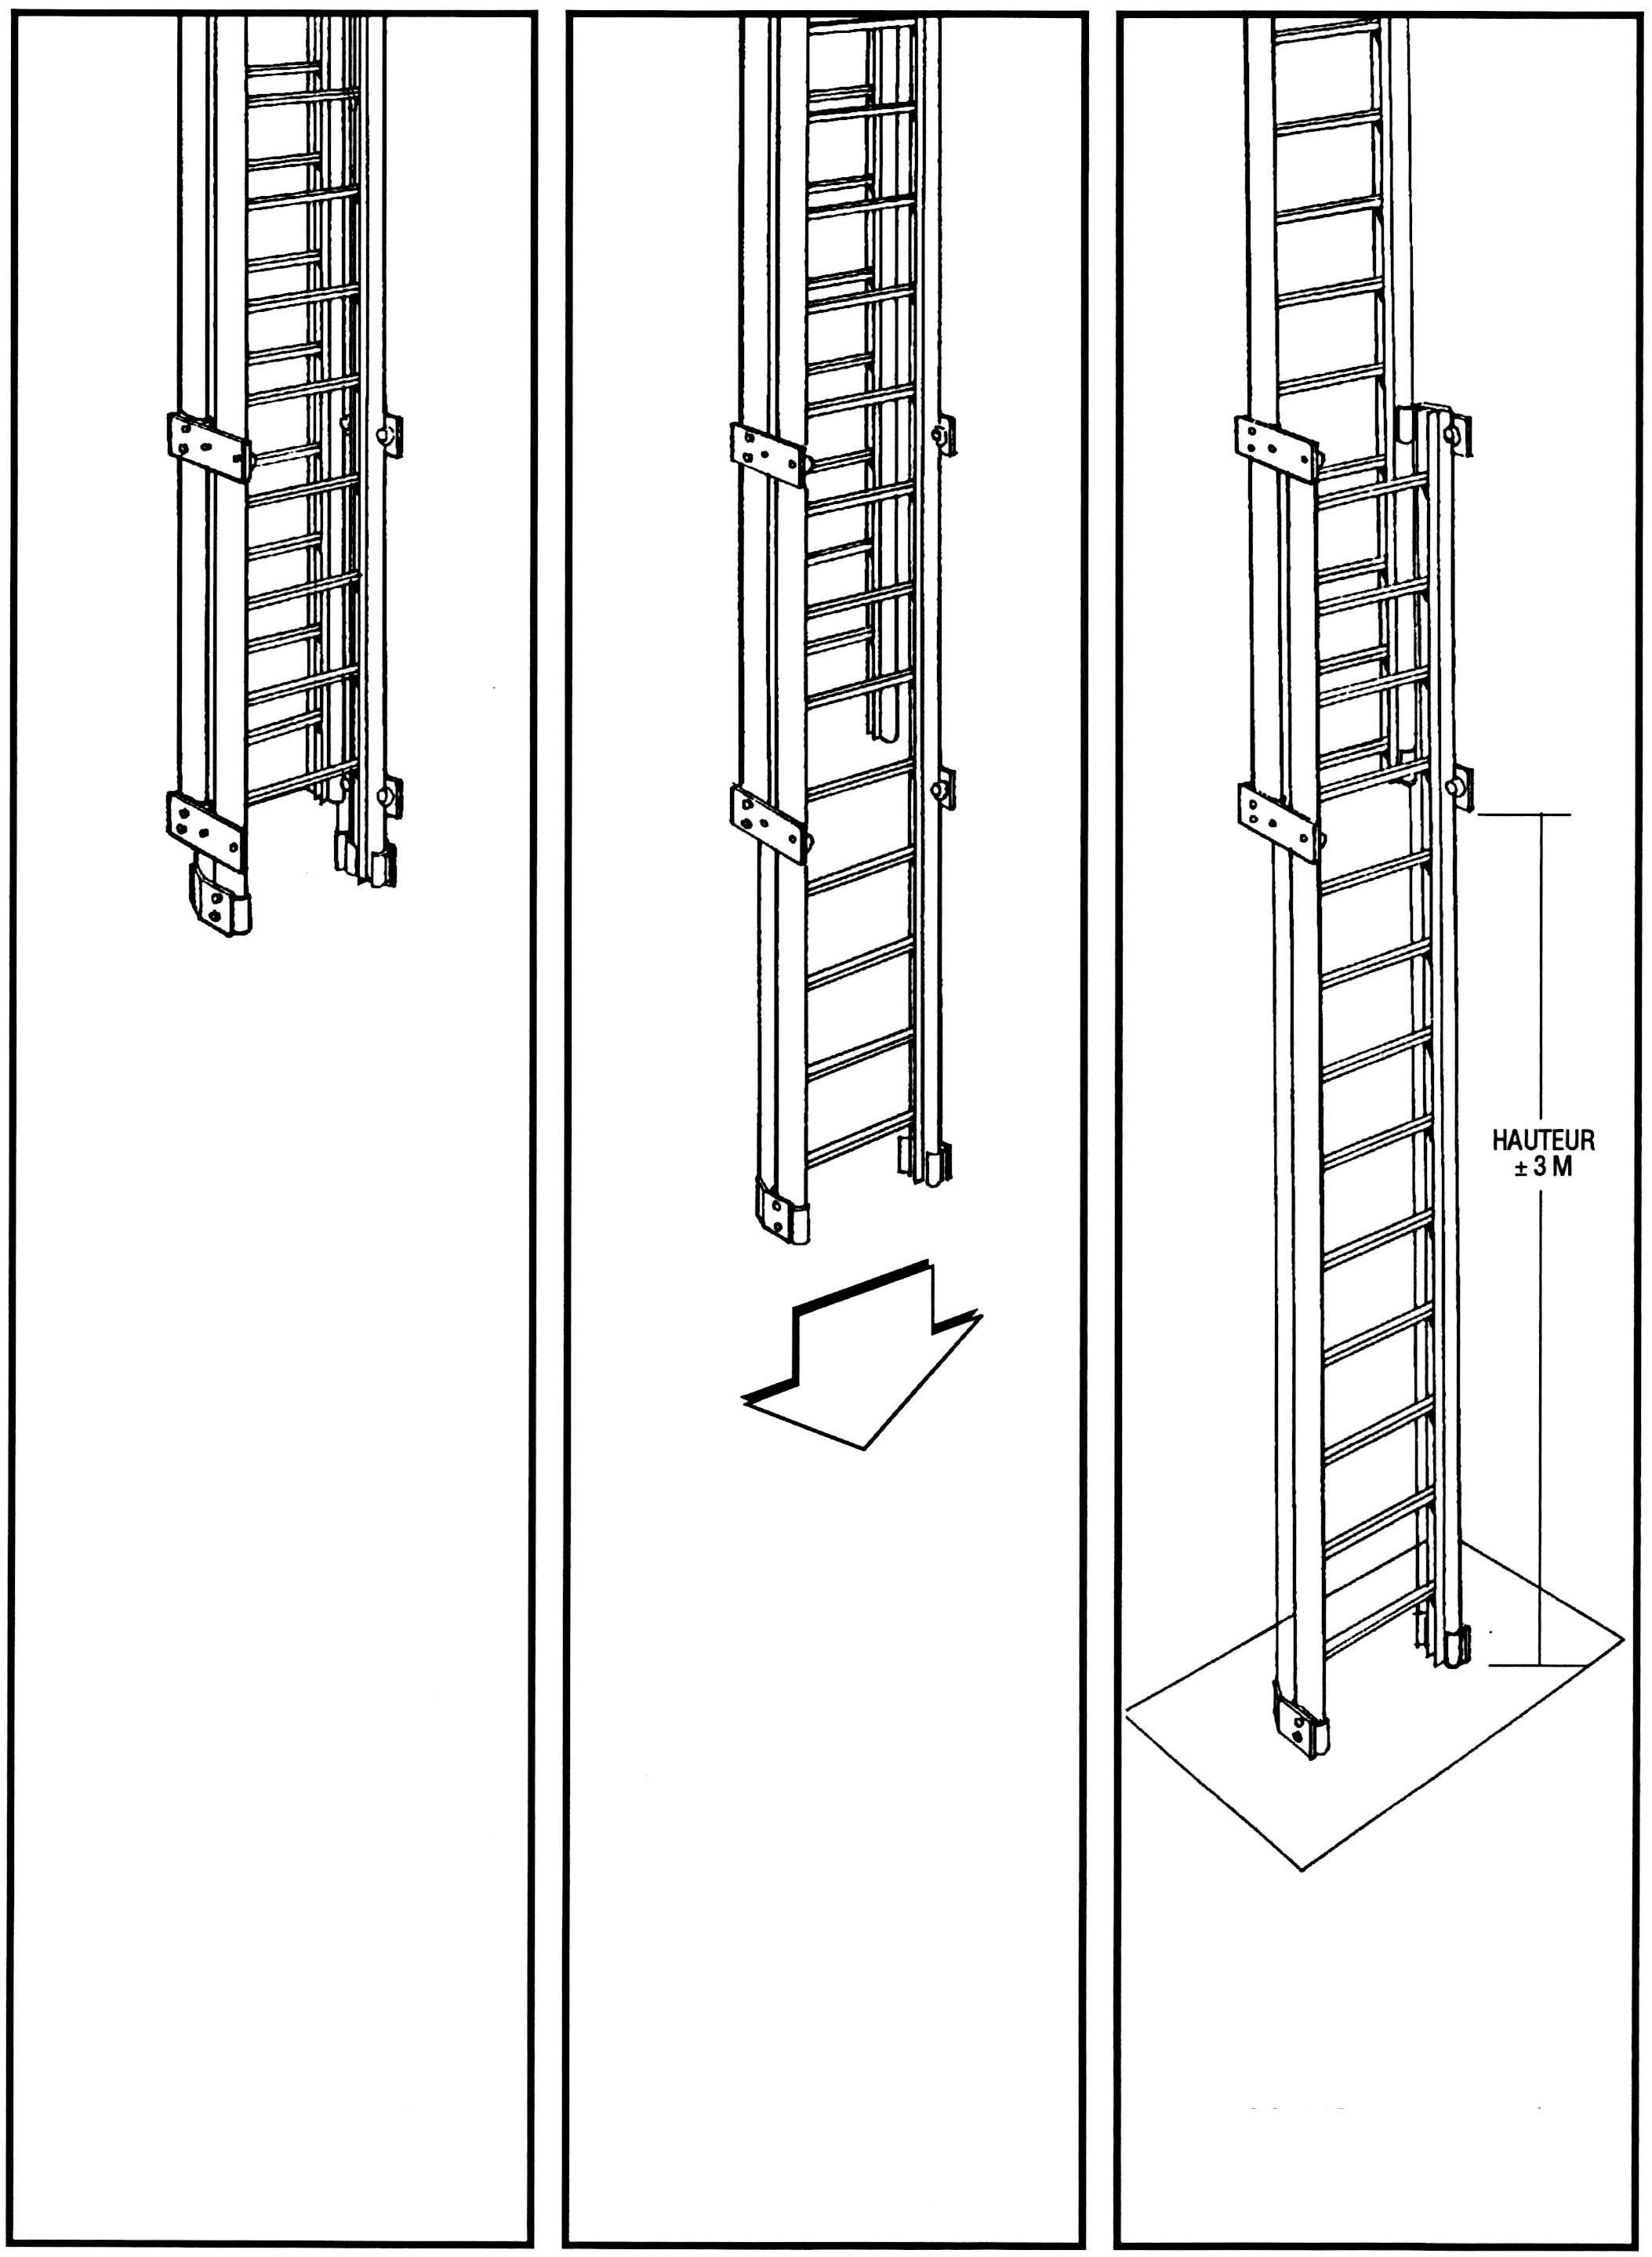 Drawing of a counterbalanced aluminum ladder